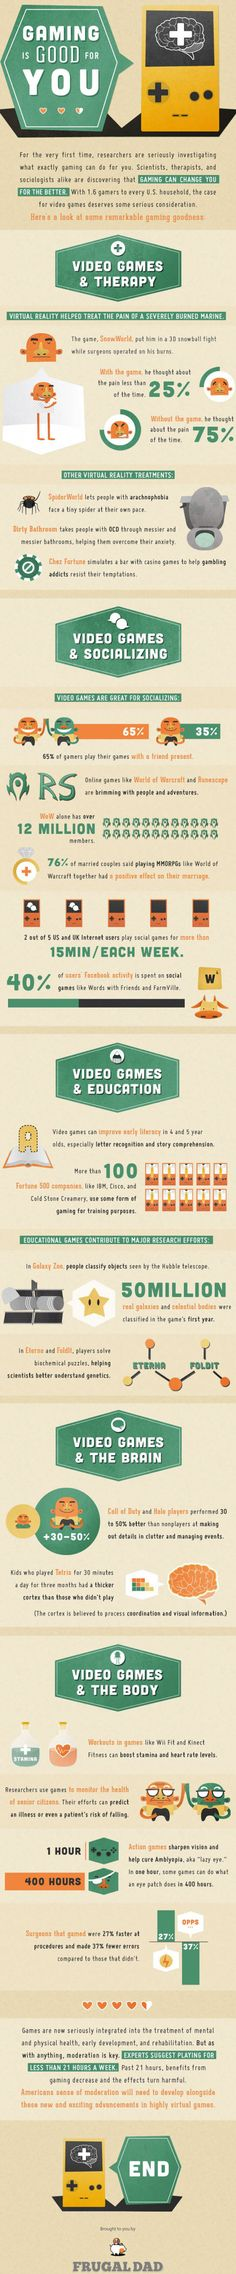 Why gaming is good for you…